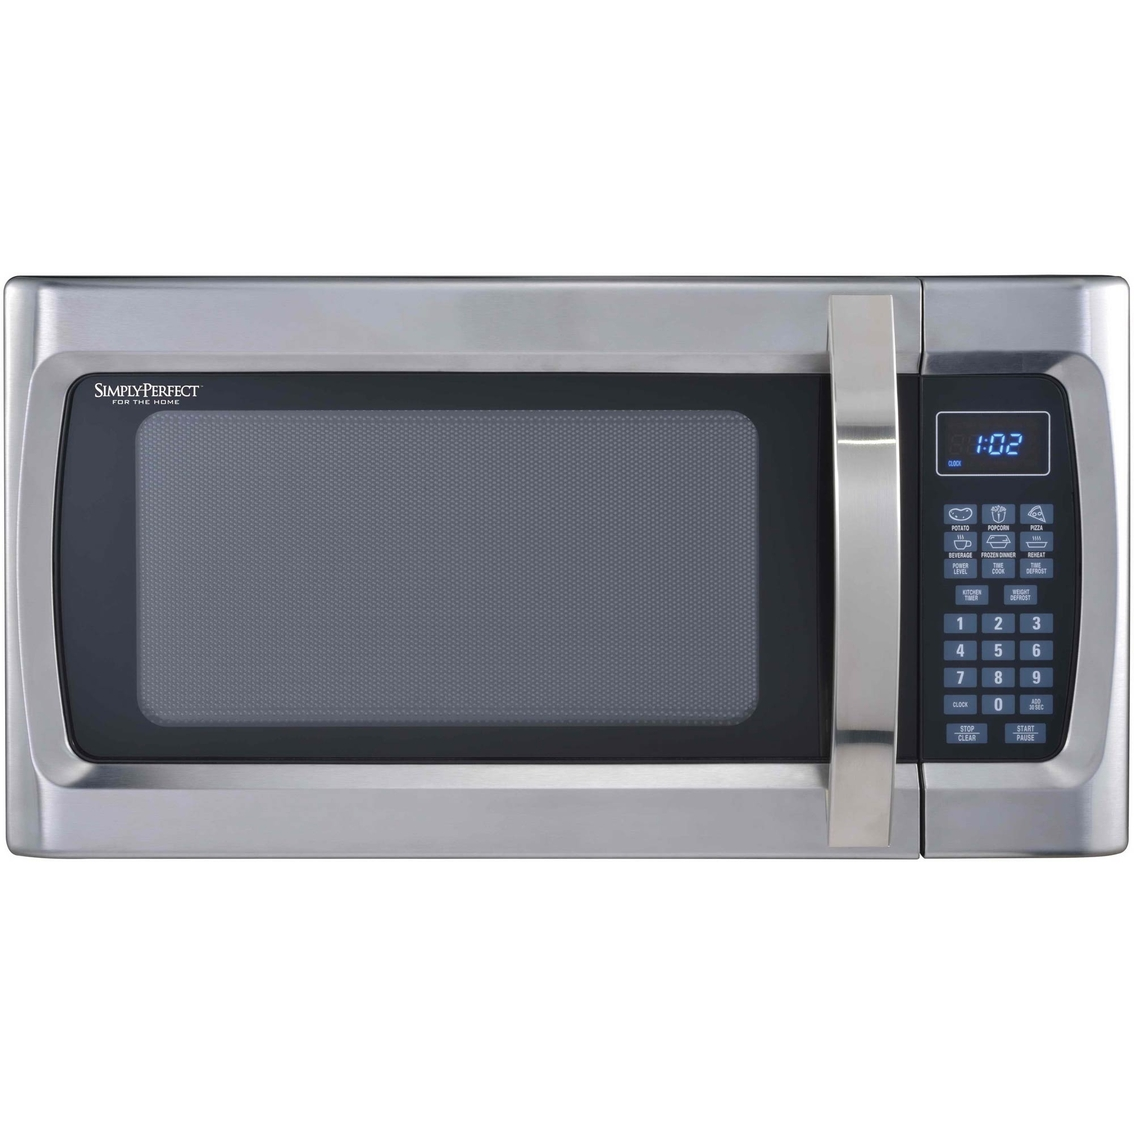 1 0 Cu Ft 1000w Microwave Oven